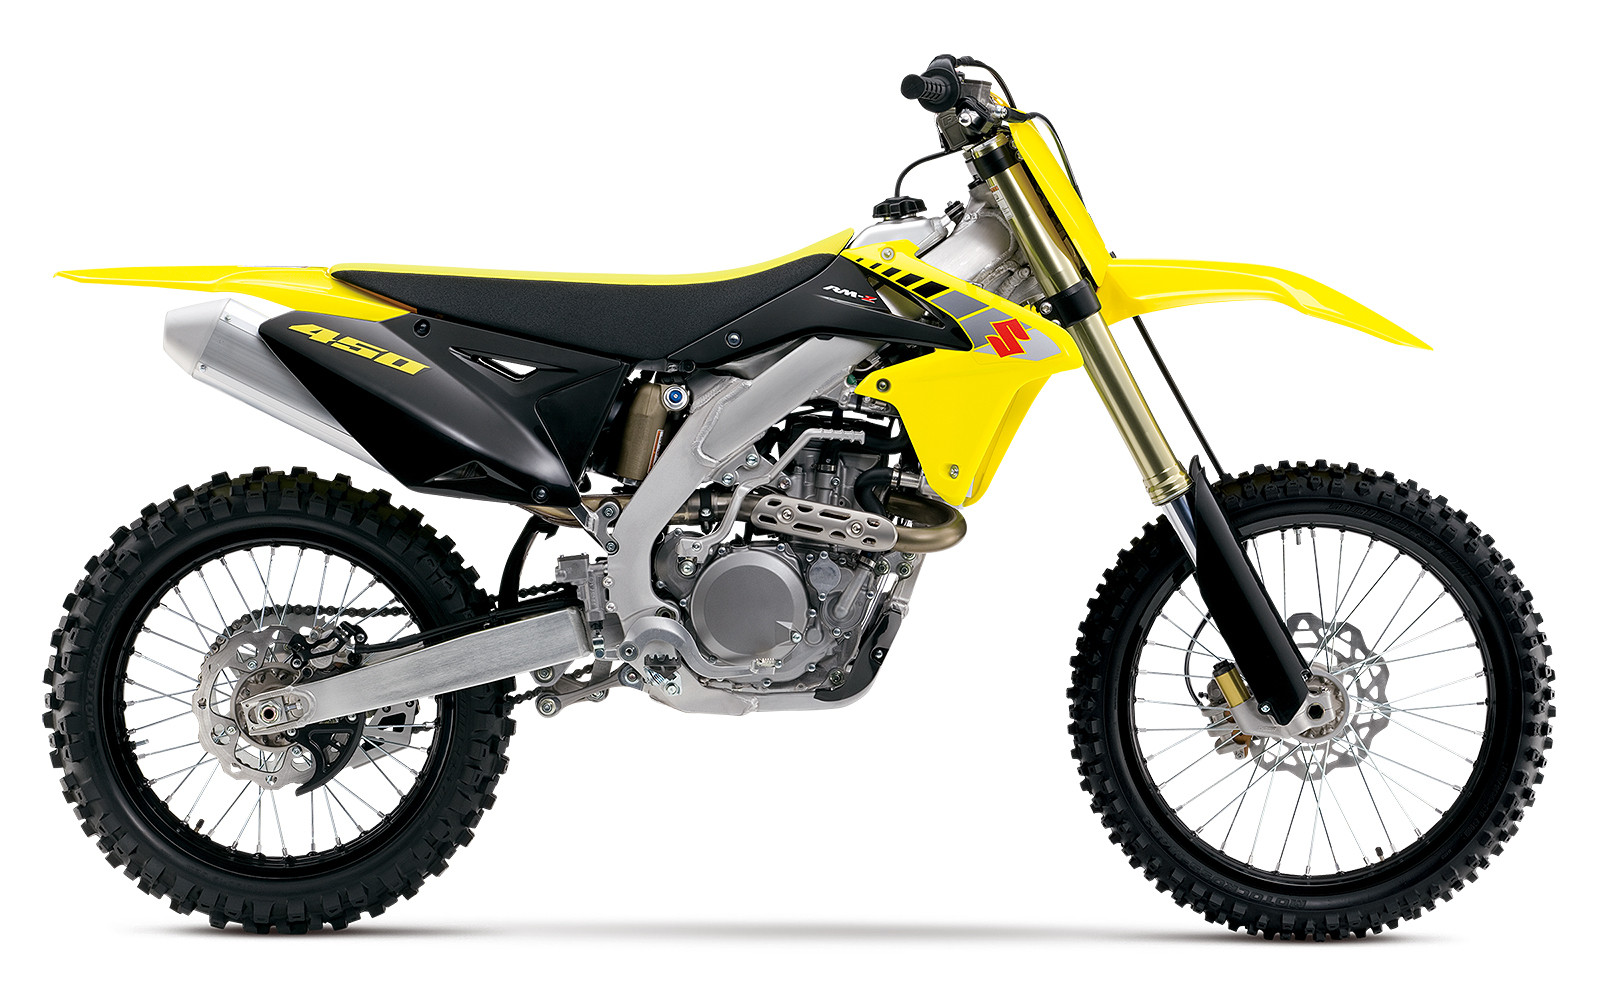 2017 Suzuki RM-Z450 - First Look: 2017 Suzuki RM, RM-Z, and RMX Models - Motocross Pictures - Vital MX